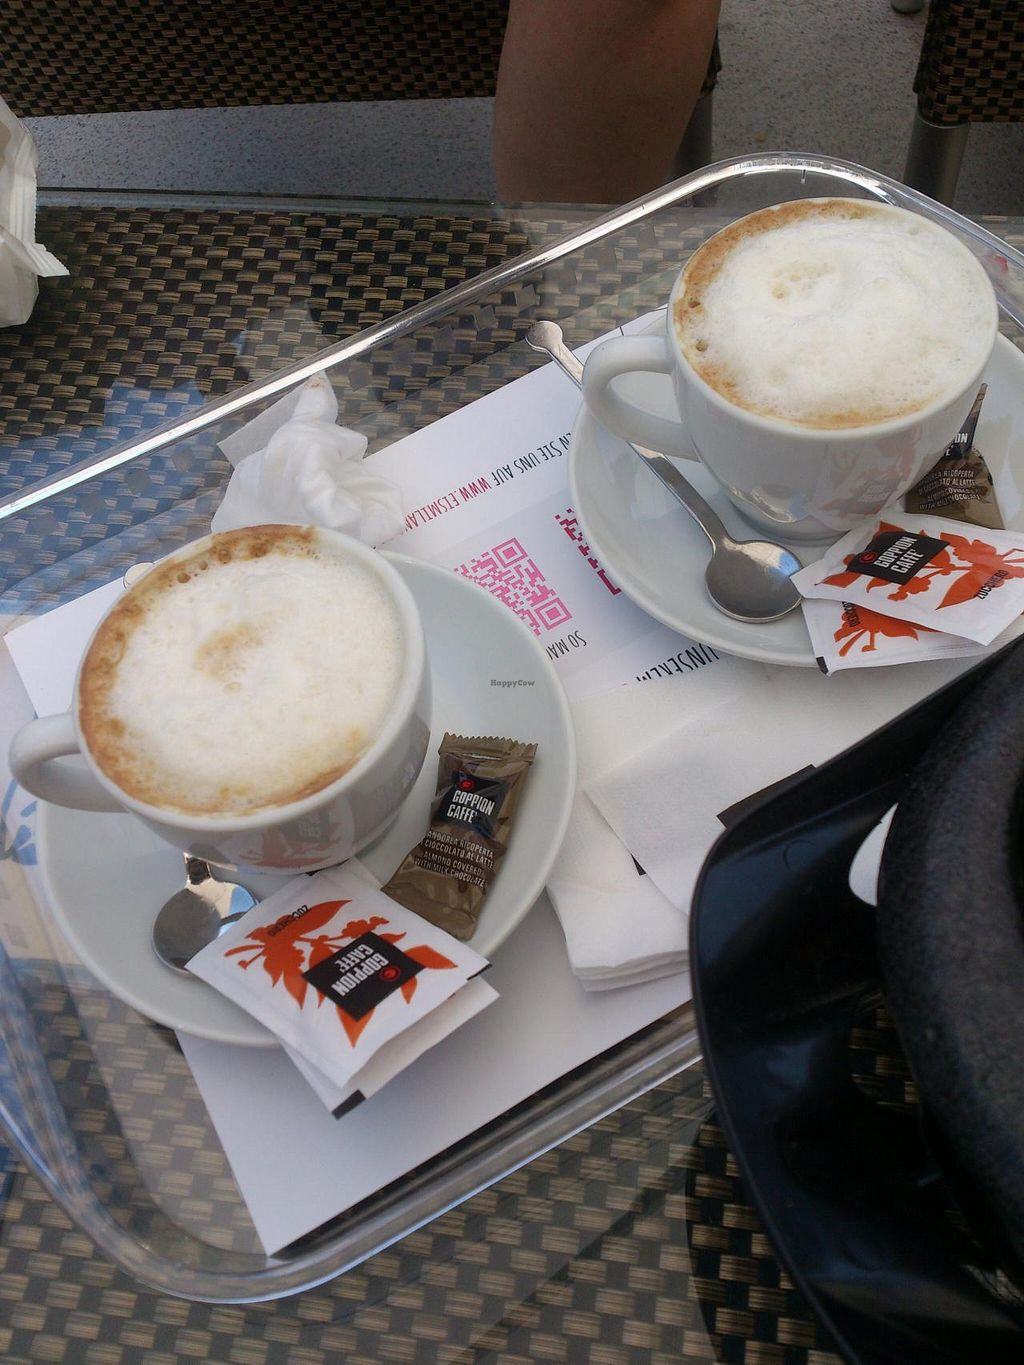 """Photo of Eiscafe Milano  by <a href=""""/members/profile/Tank242"""">Tank242</a> <br/>superb soya cappucini <br/> June 7, 2015  - <a href='/contact/abuse/image/58910/105023'>Report</a>"""